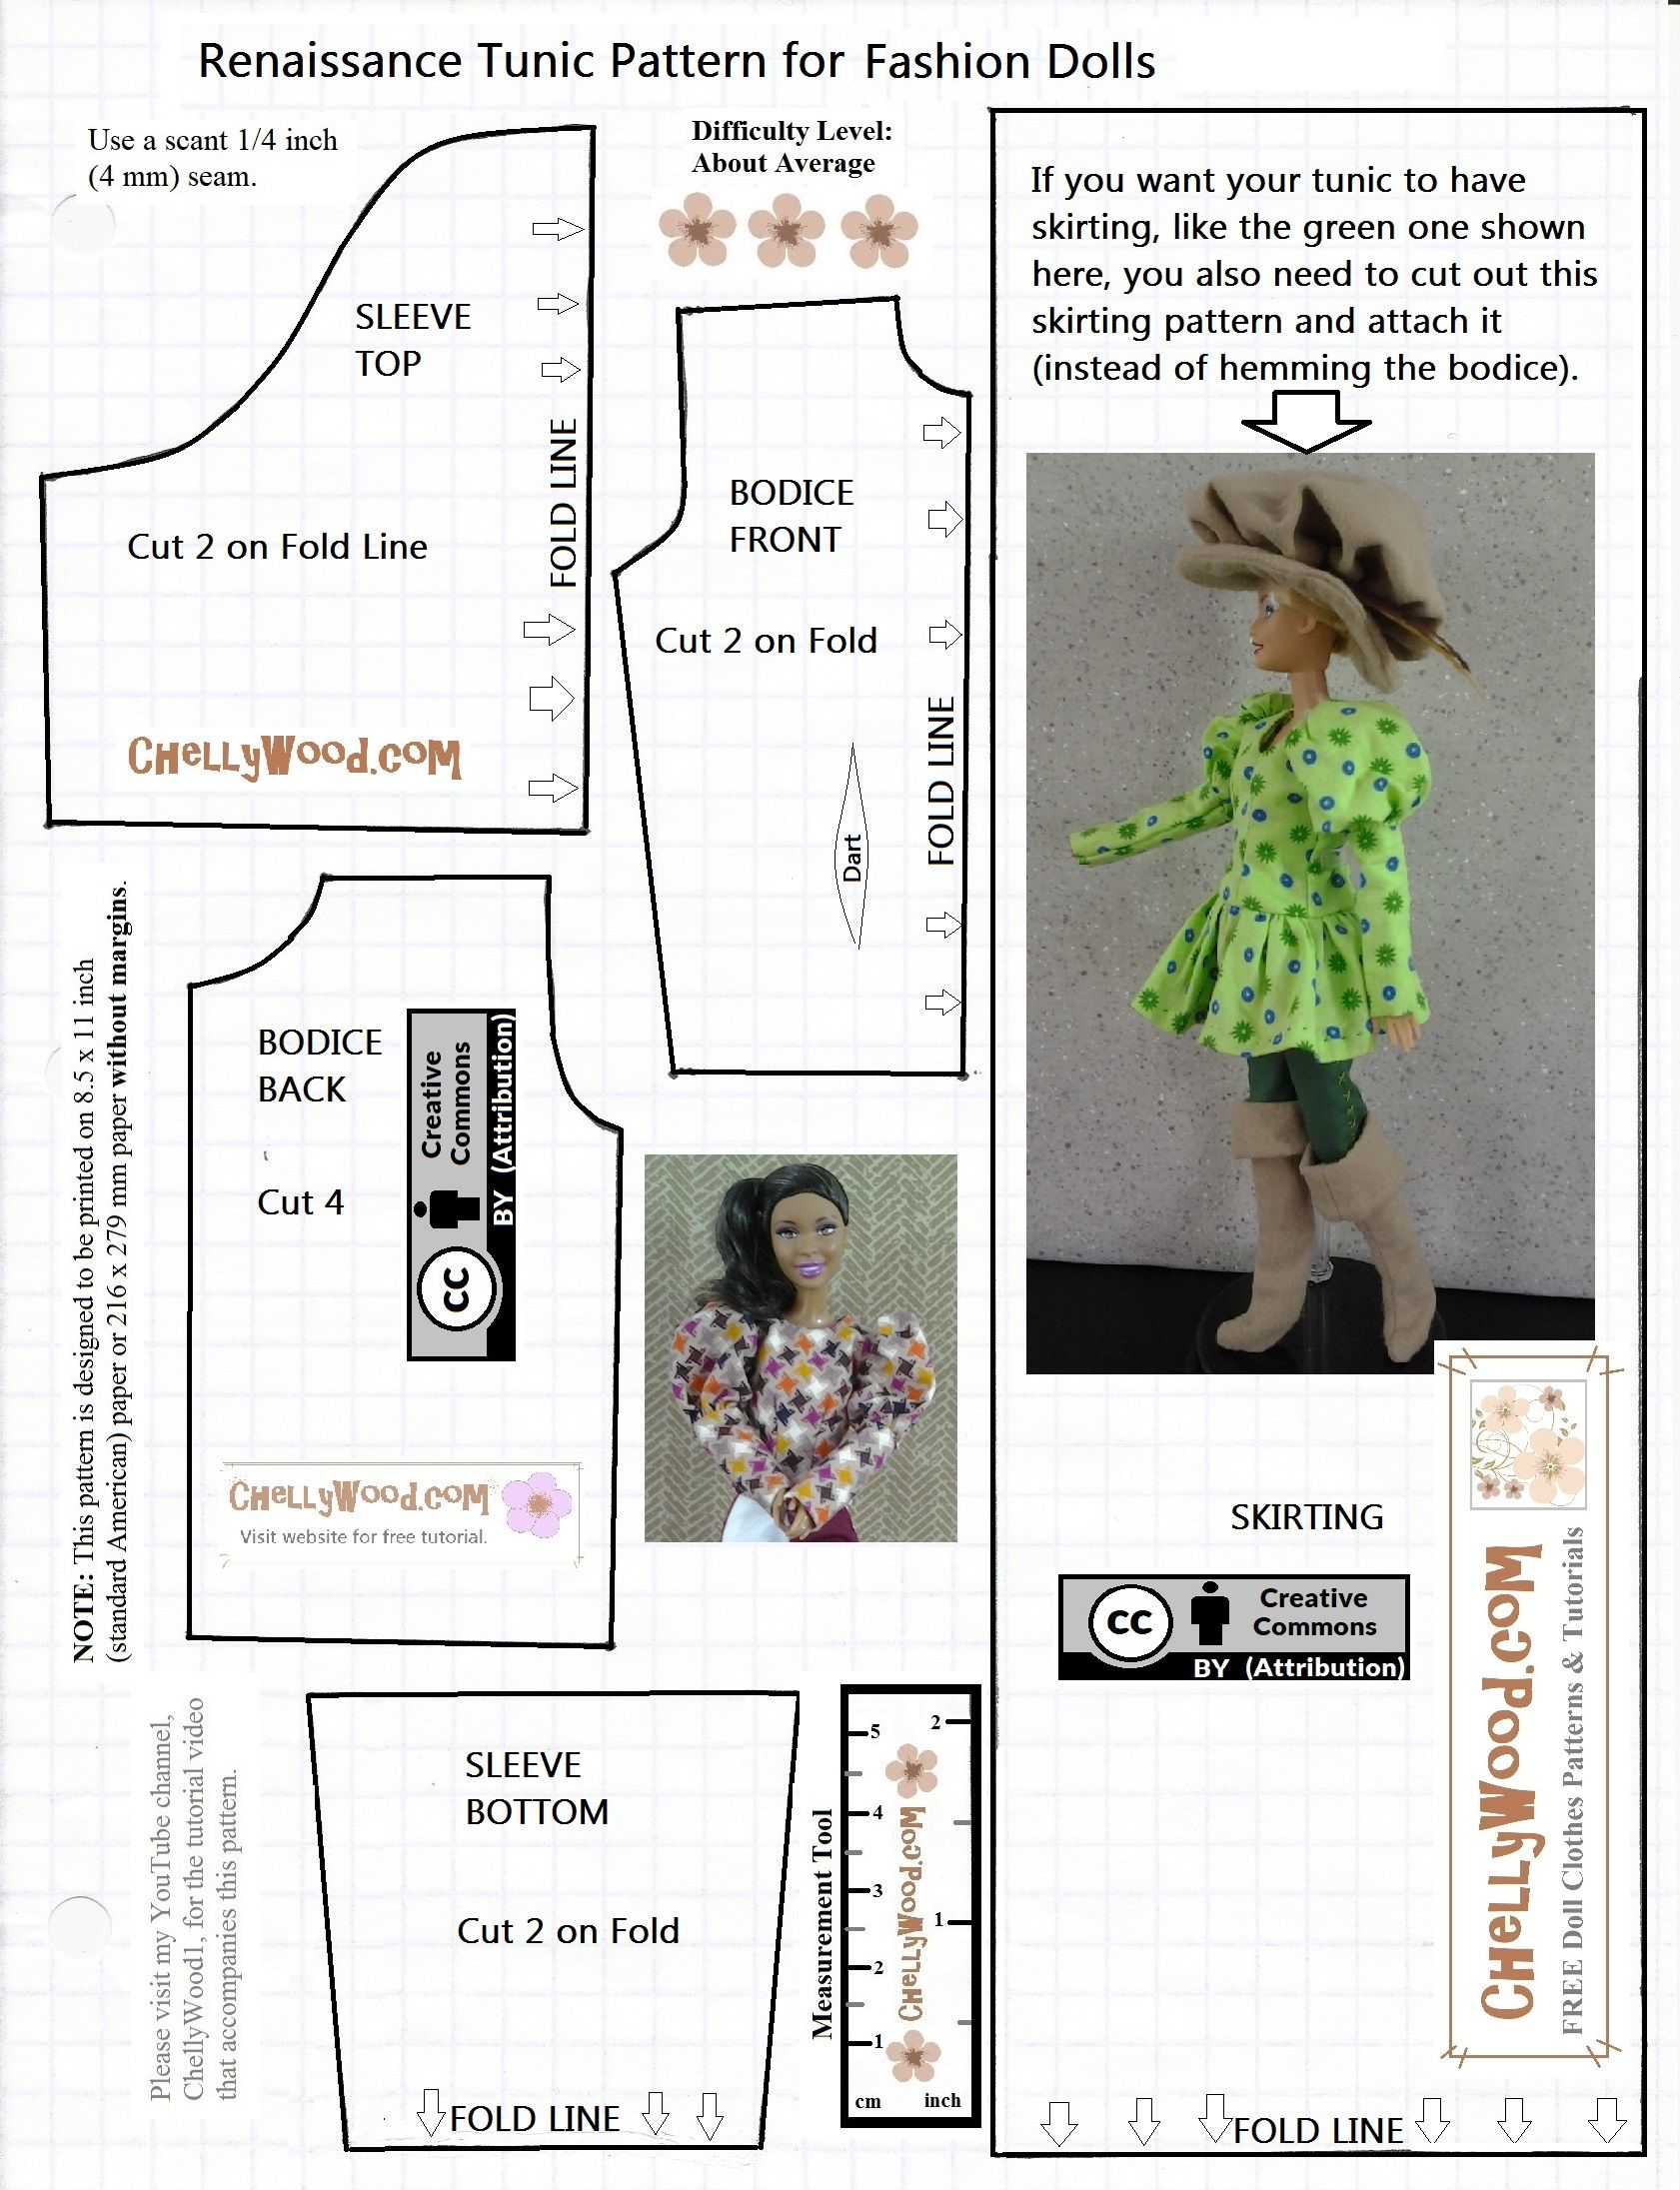 Visit chellywood for free printable sewing patterns for dolls visit chellywood for free printable sewing patterns for dolls of many shapes and sizes this pattern fits barbie and curvy barbie dolls jeuxipadfo Gallery